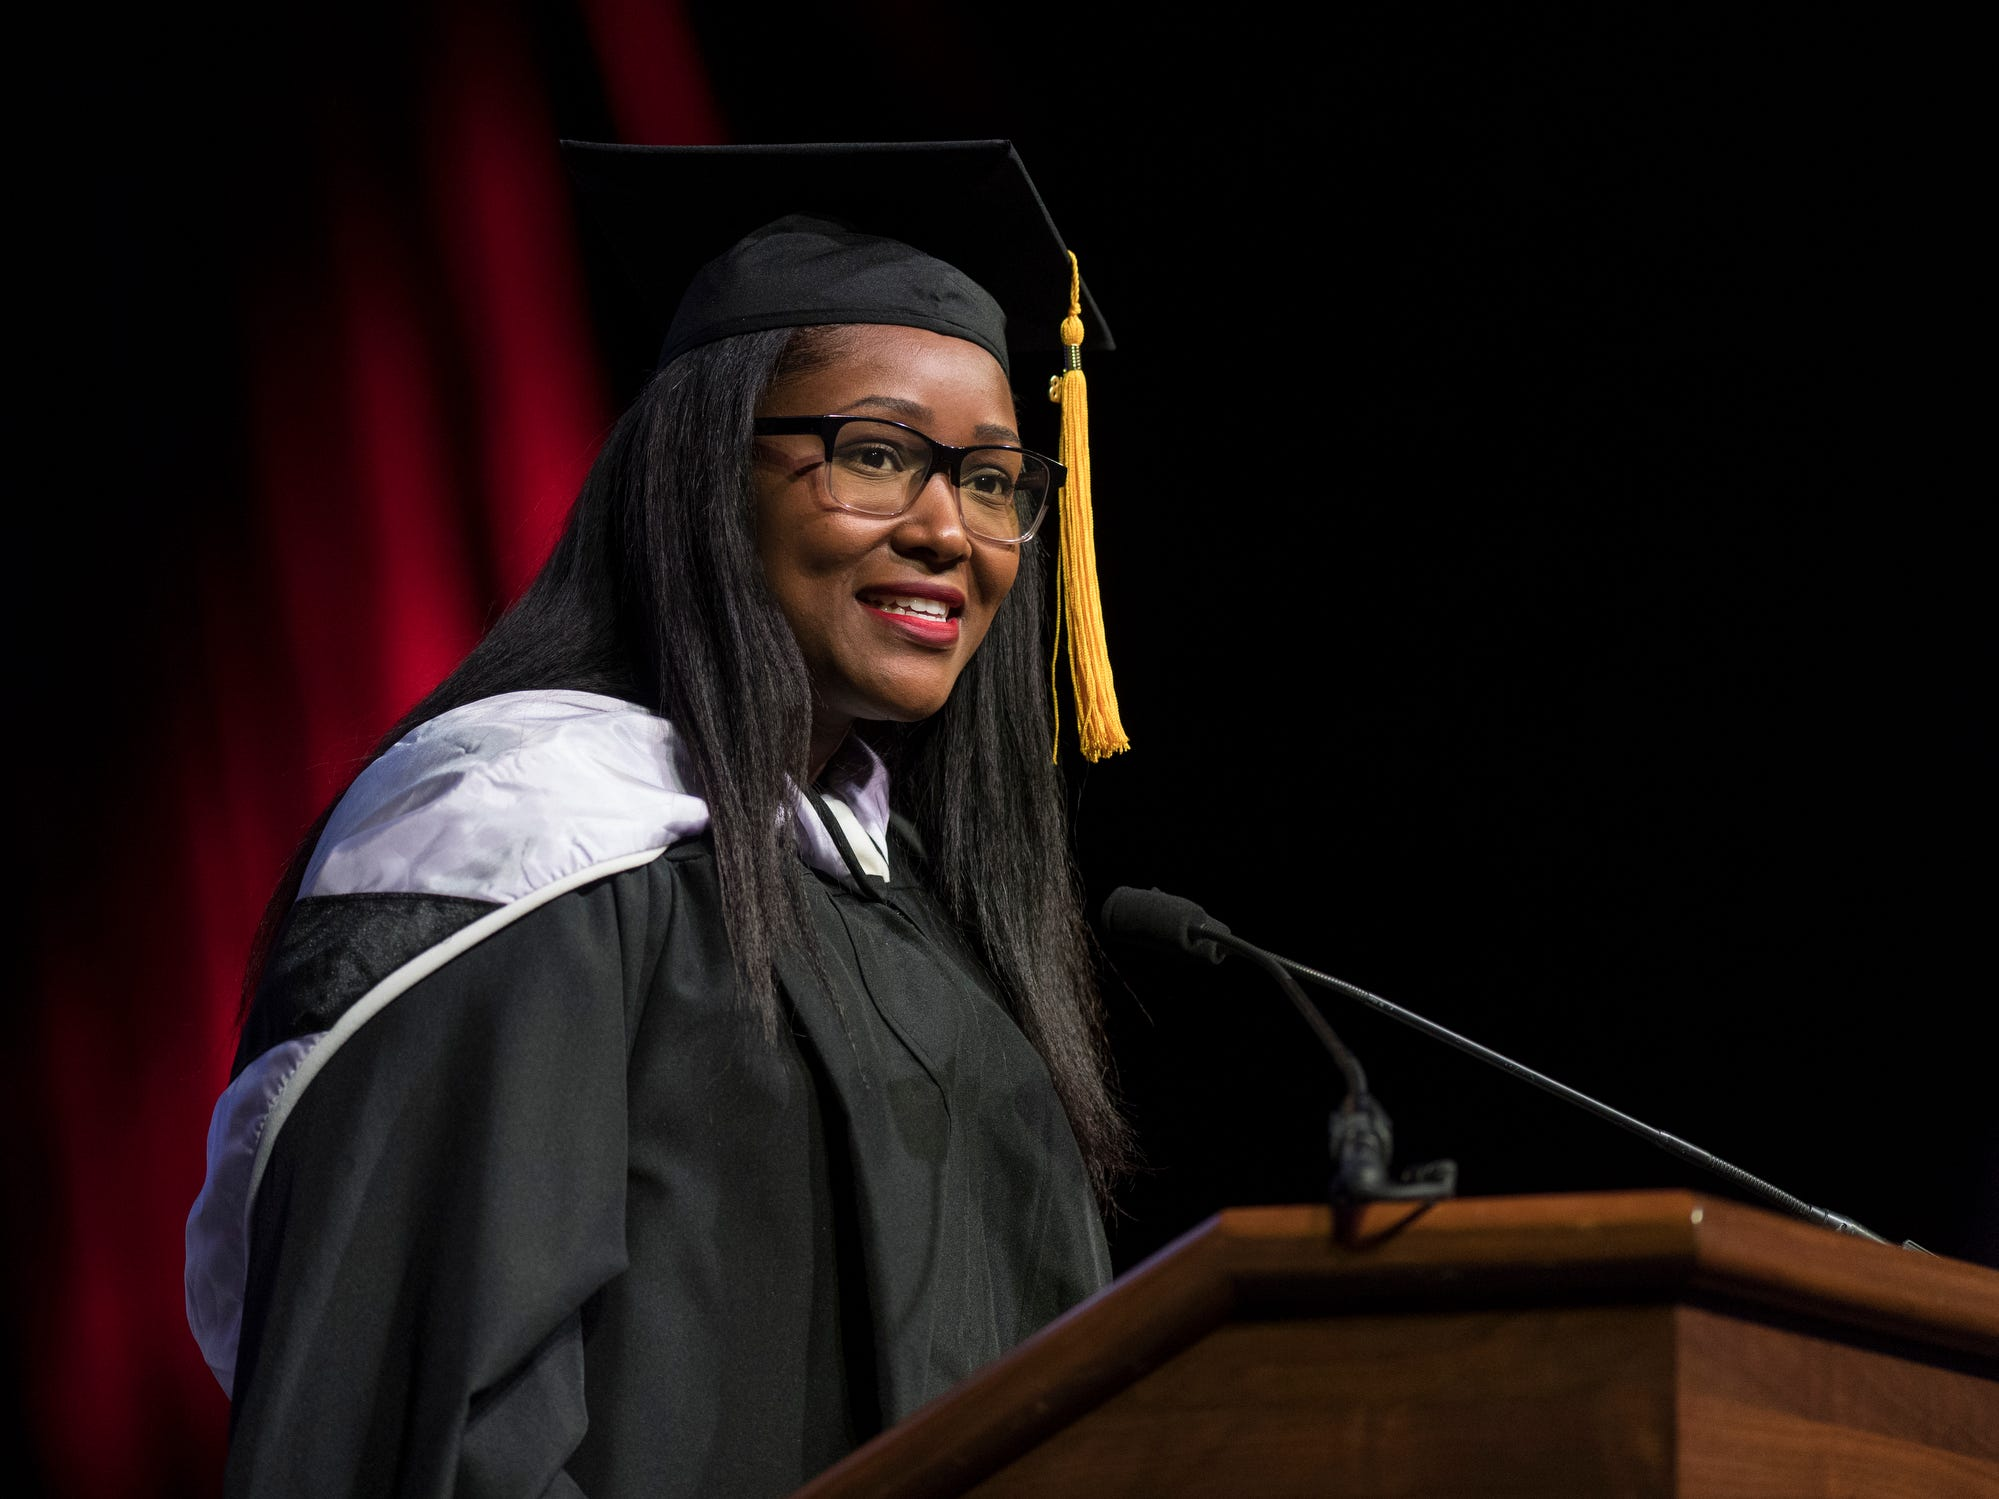 Xavia Harrington-Chate, Instructor of English, gives the commencement address during the University of Southern Indiana's fall commencement ceremony for the College of Liberal Arts and Romain College of Business at the Physical Activities Center on campus in Evansville, Ind., Saturday, Dec. 8, 2018. She is the 2018 recipient of the H. Lee Cooper Core Curriculum Teaching award.